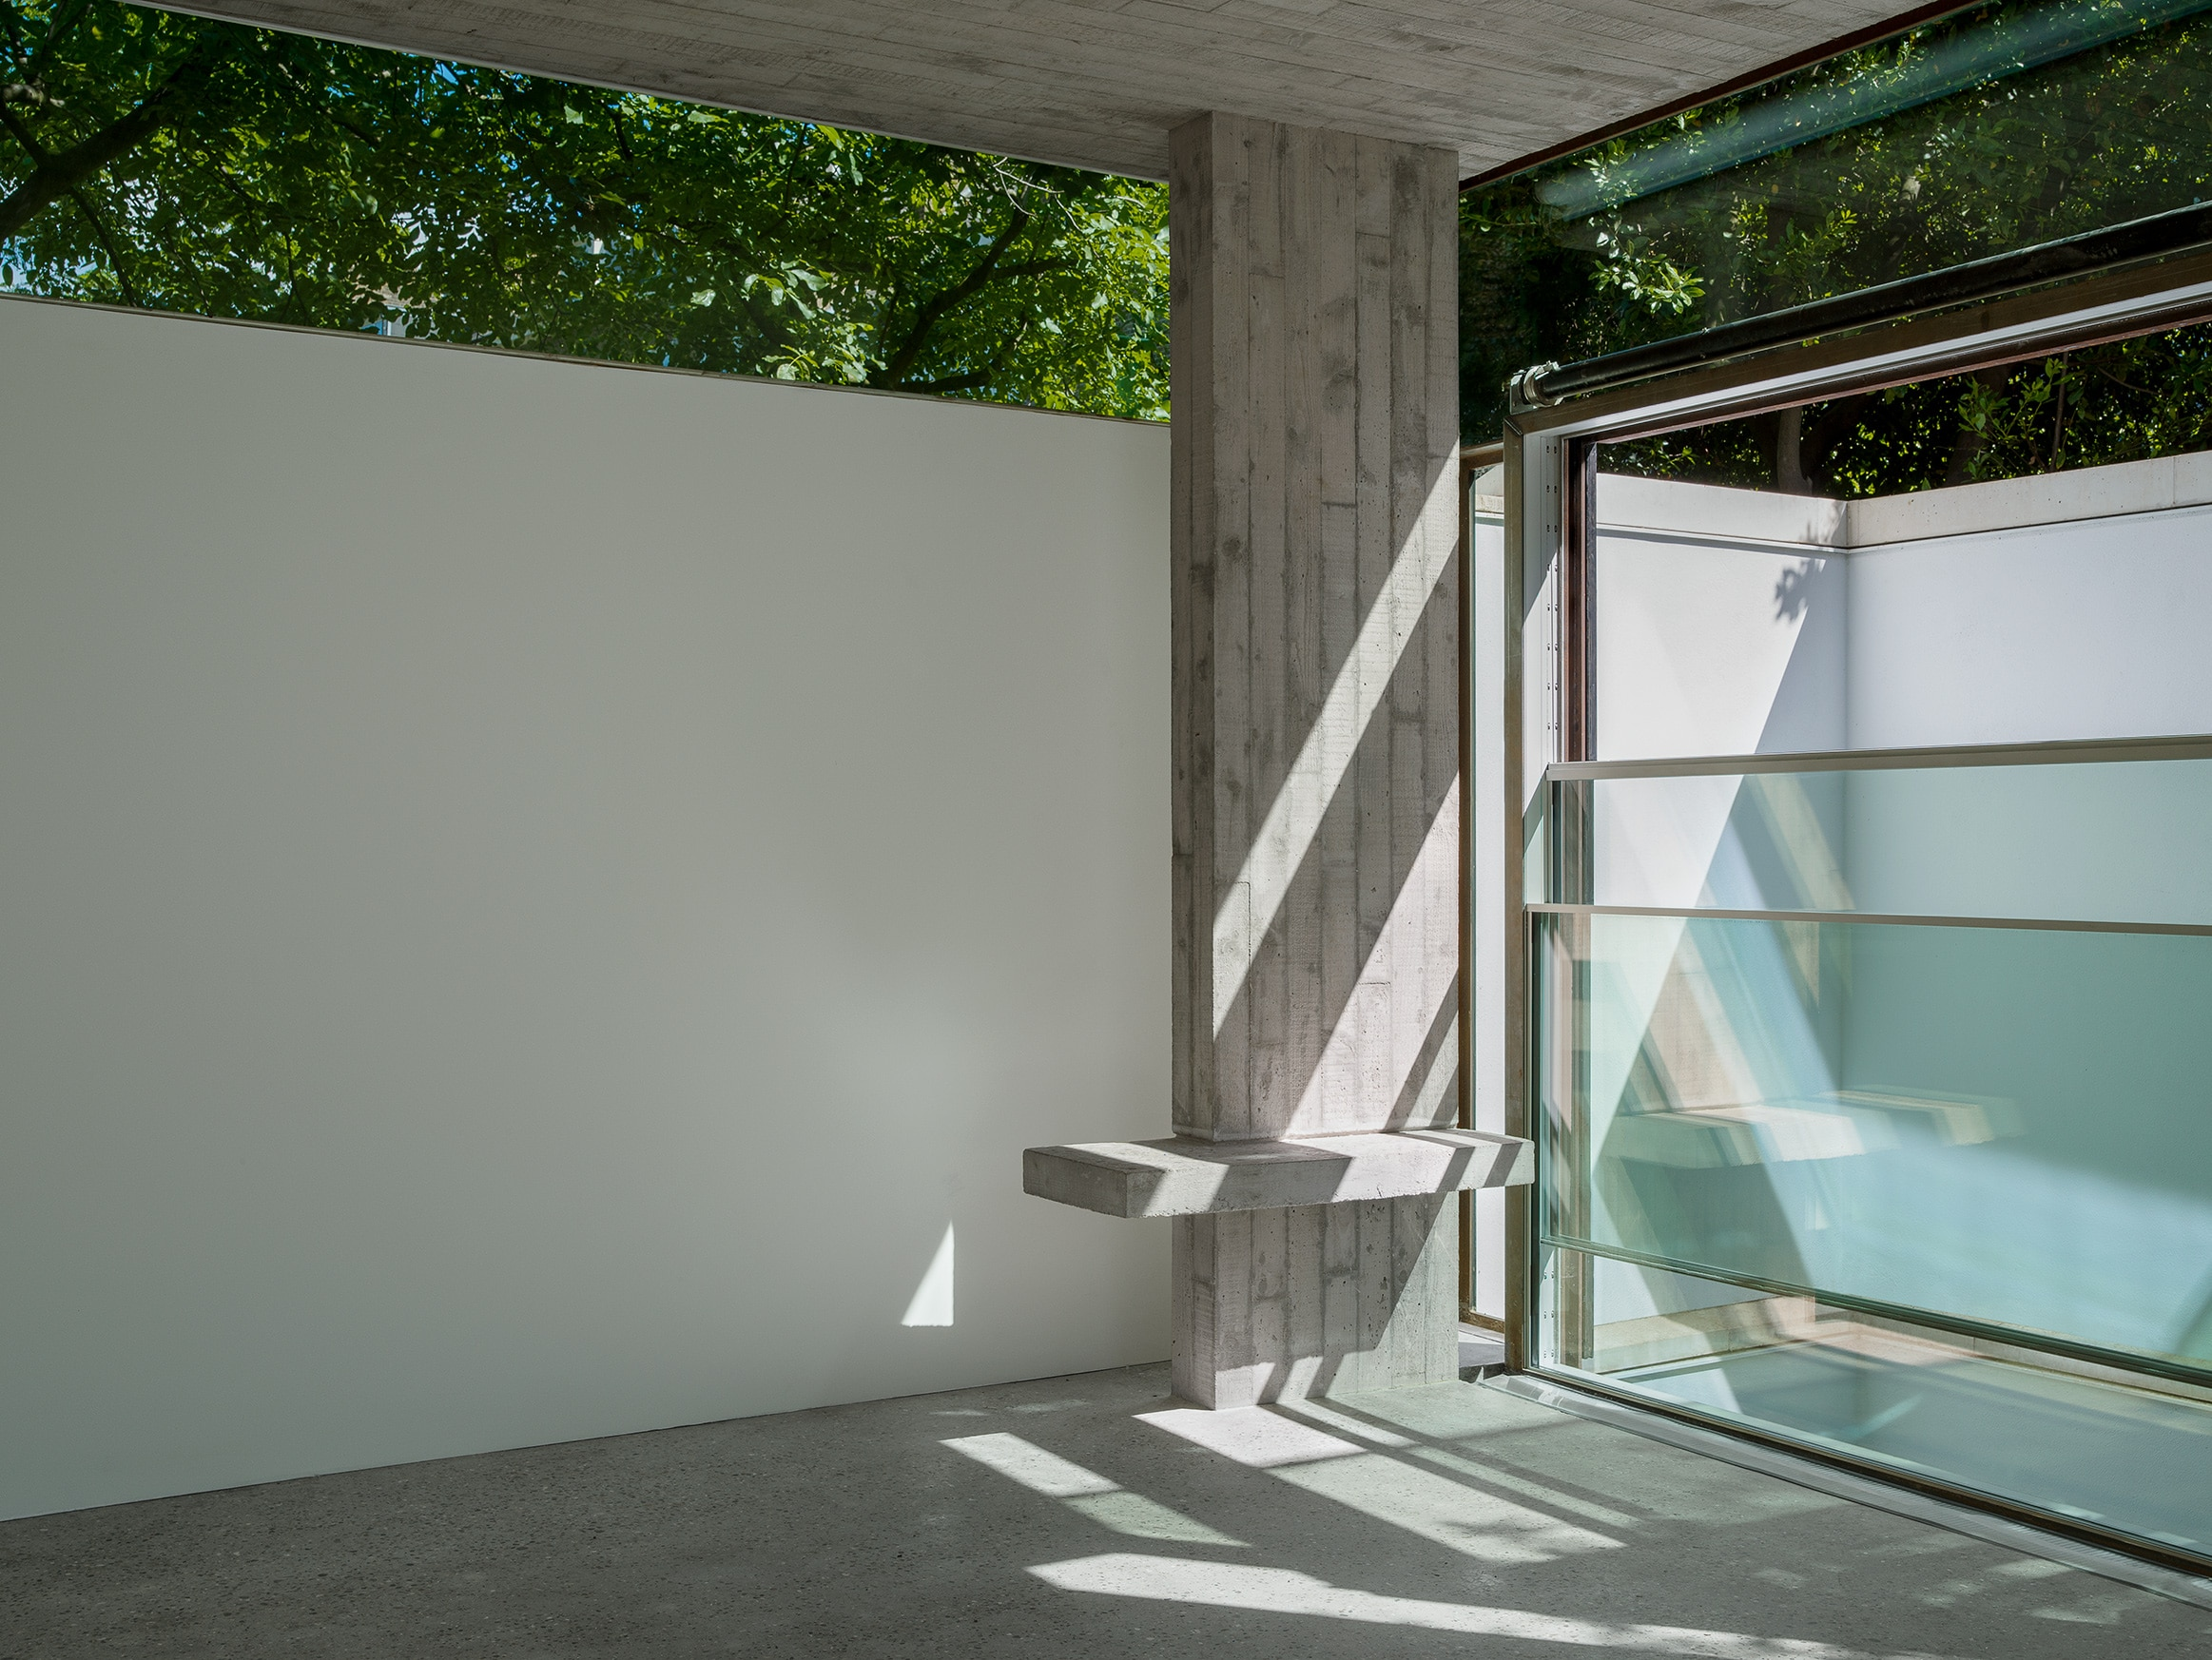 Sophie Hicks Architects. 1A Earl's Court Square. The structural frame is in exposed concrete